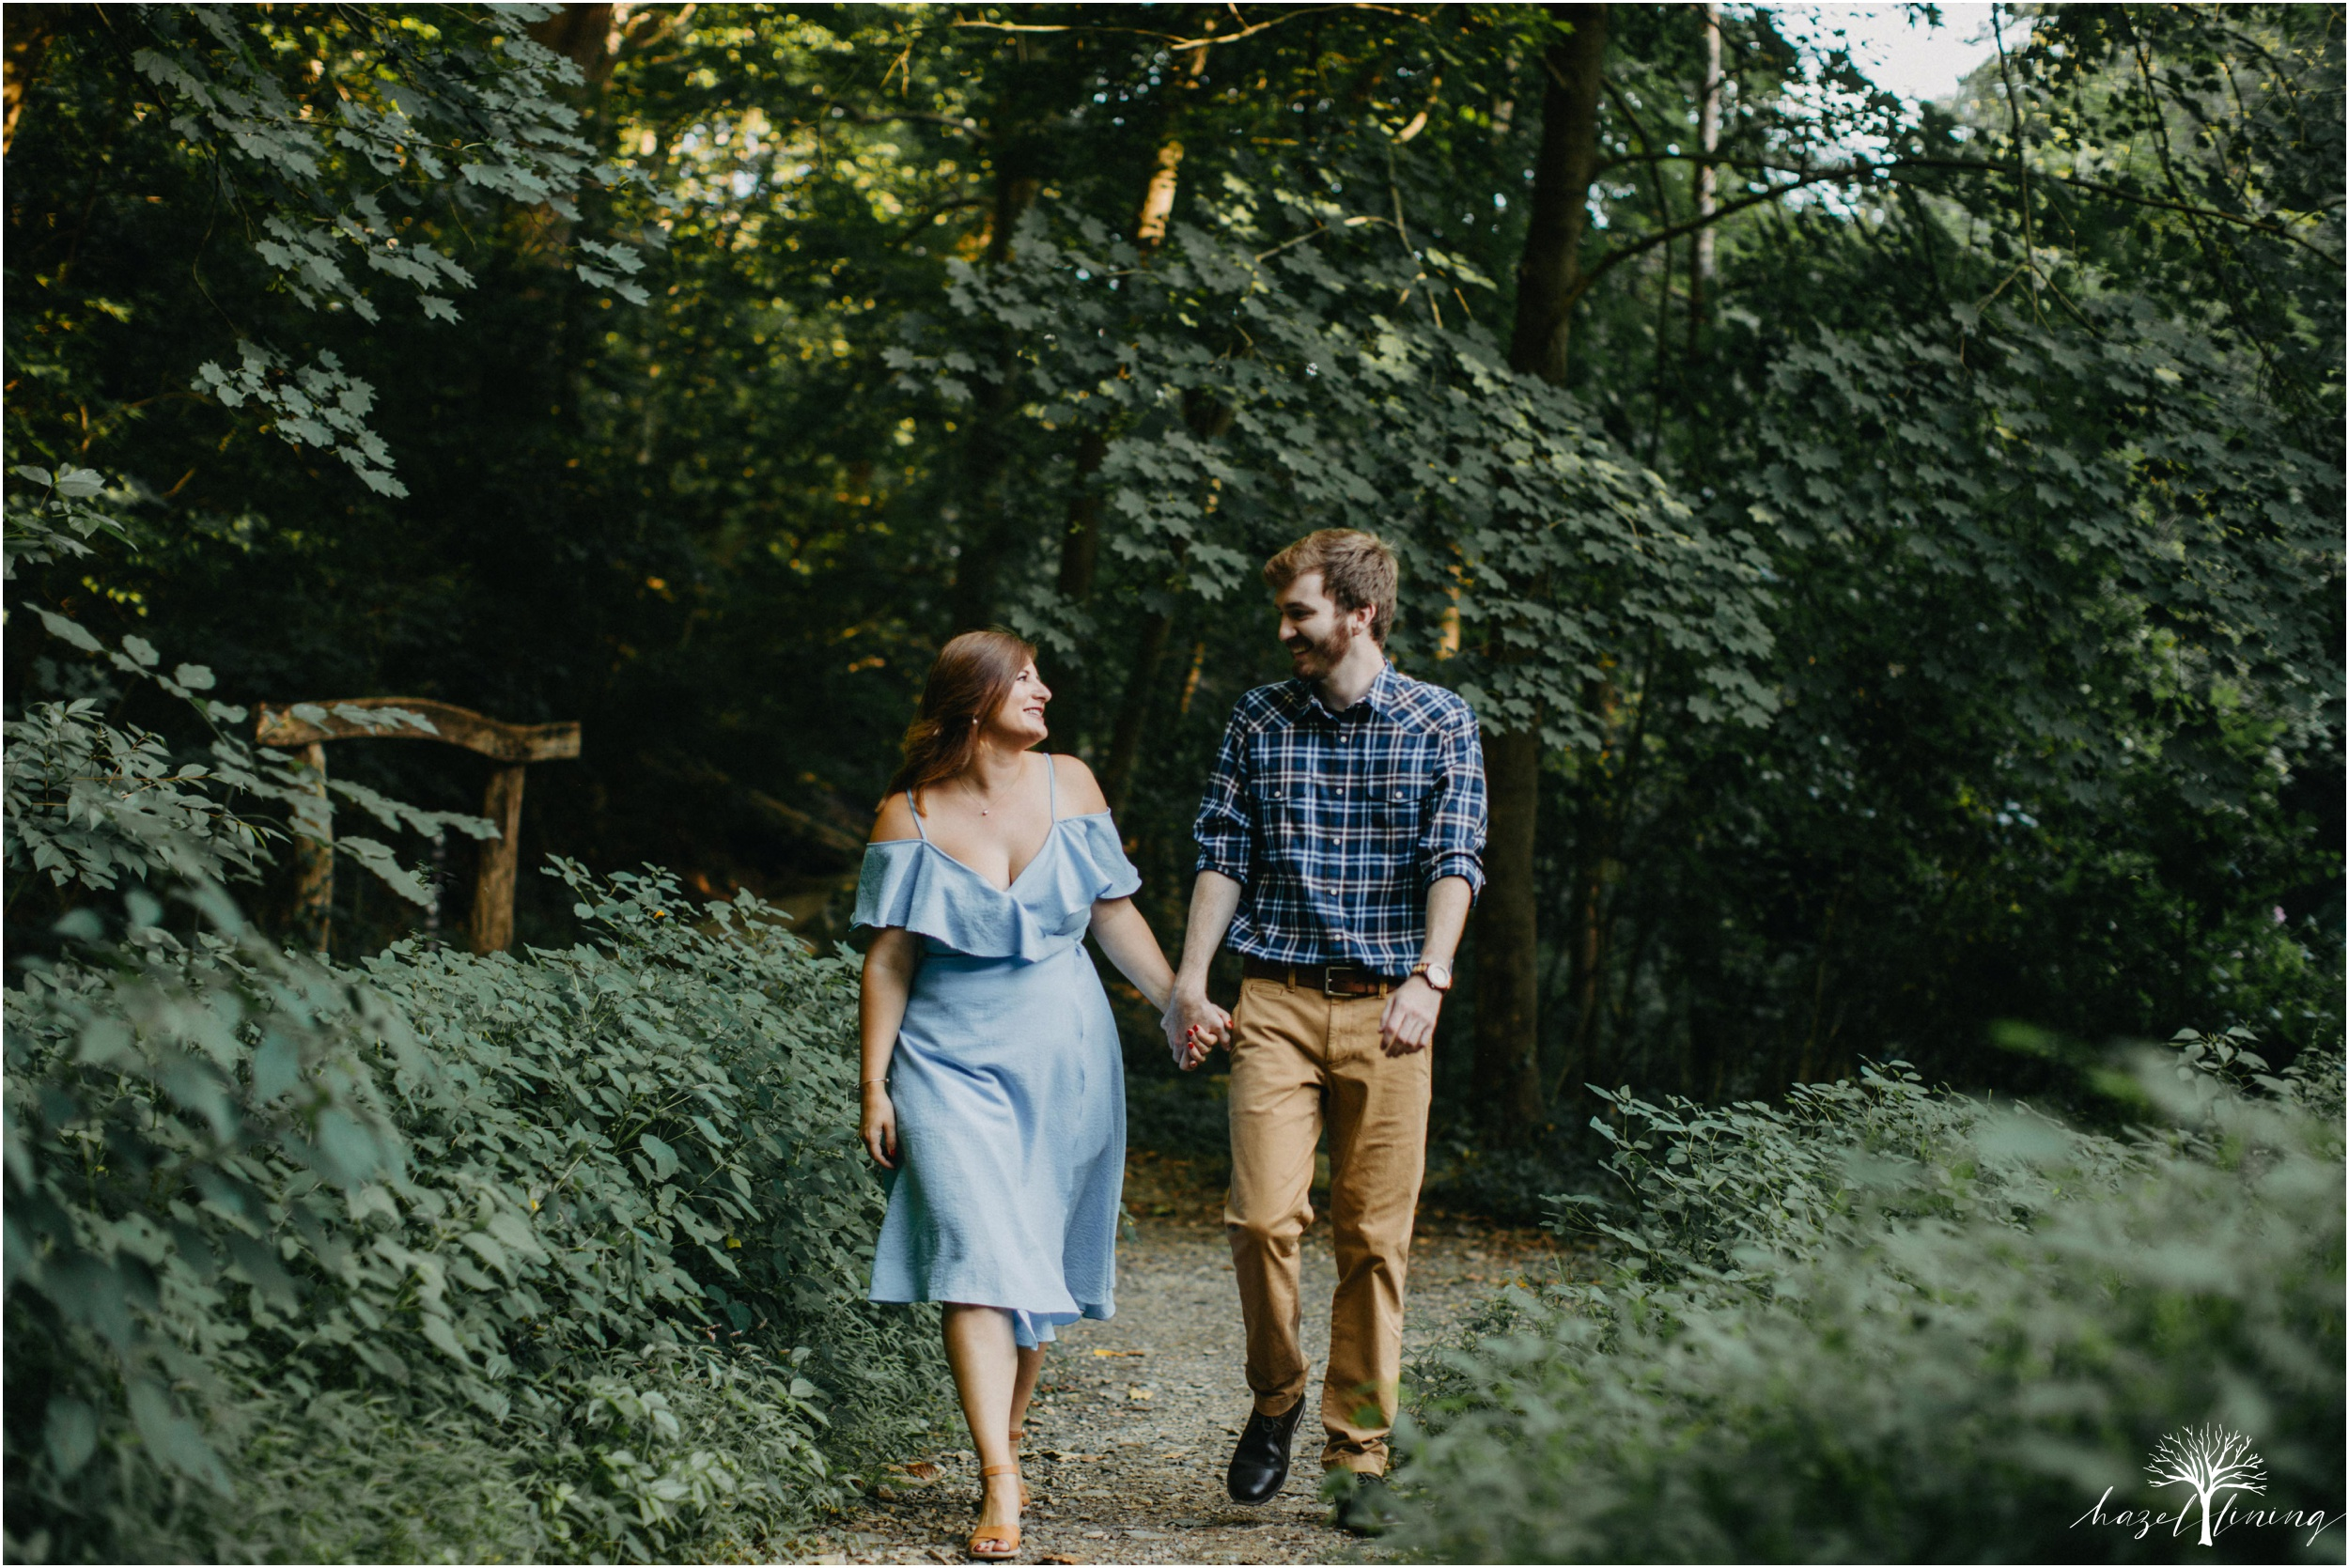 paige-kochey-chris-graham-valley-green-wissahickon-park-philadelphia-summer-engagement-session-hazel-lining-photography-destination-elopement-wedding-engagement-photography_0031.jpg